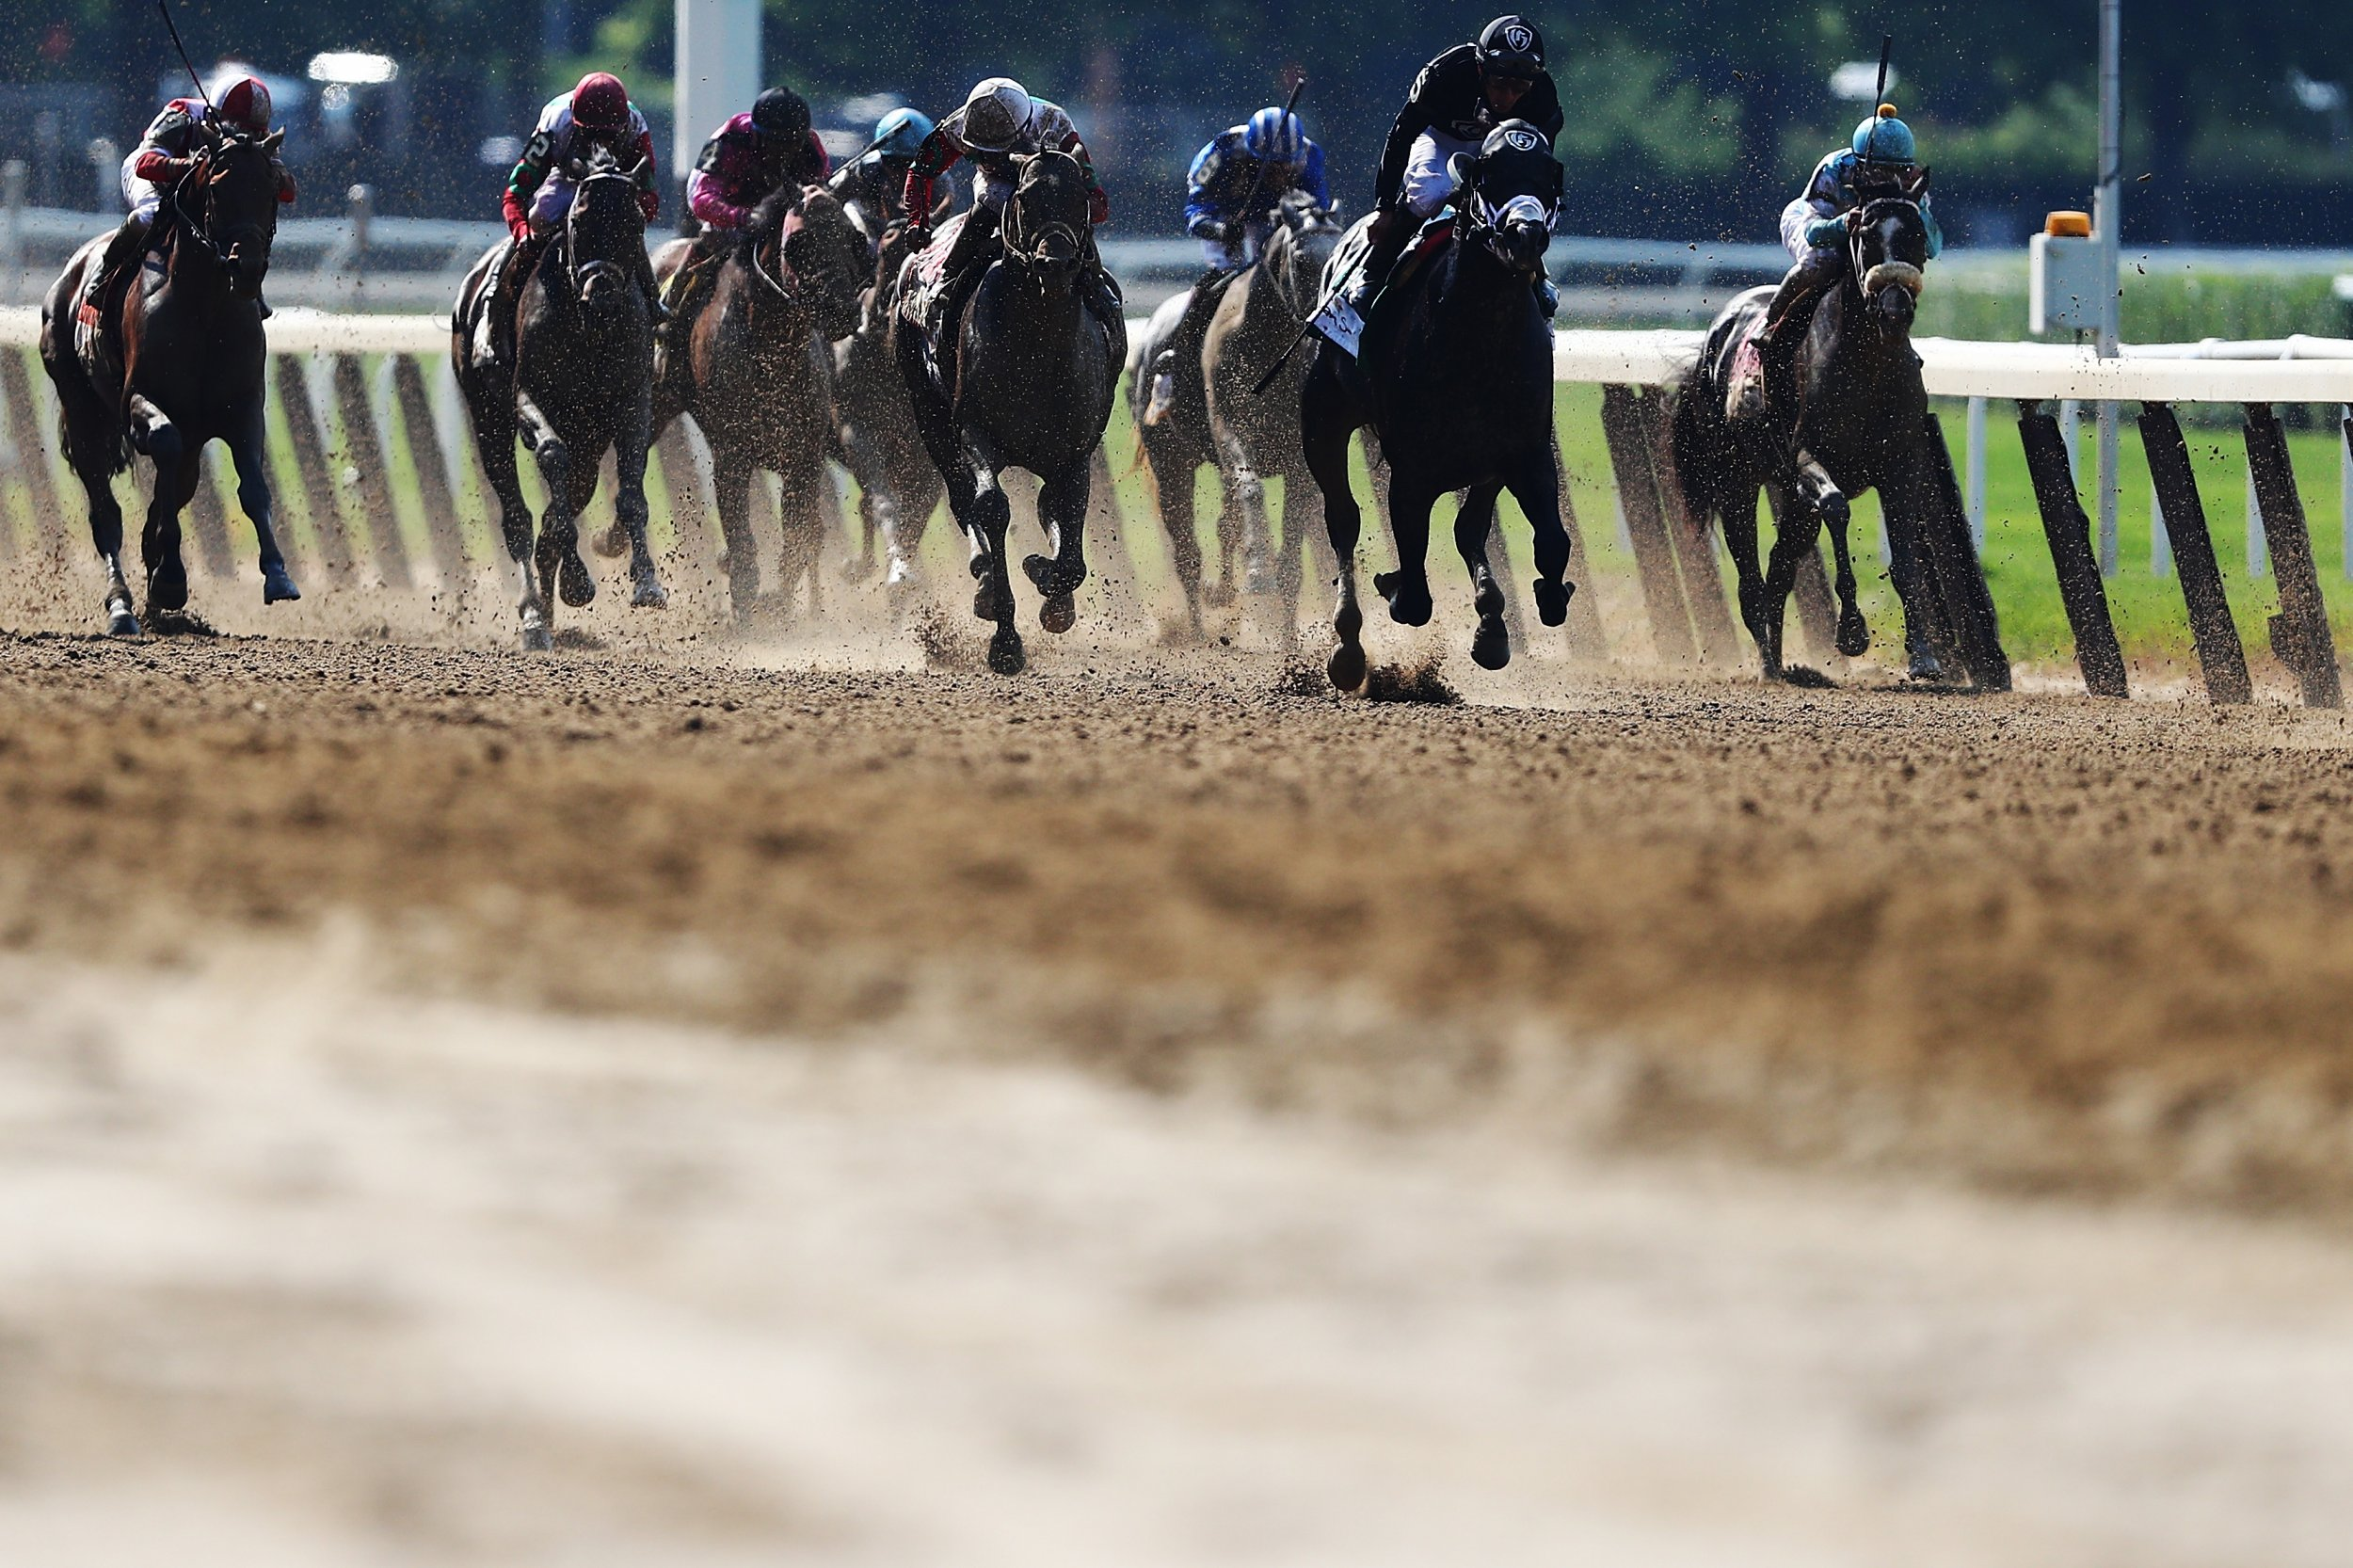 Belmont Stakes 2018 Time: How to Watch Justify Go for the Triple Crown Live